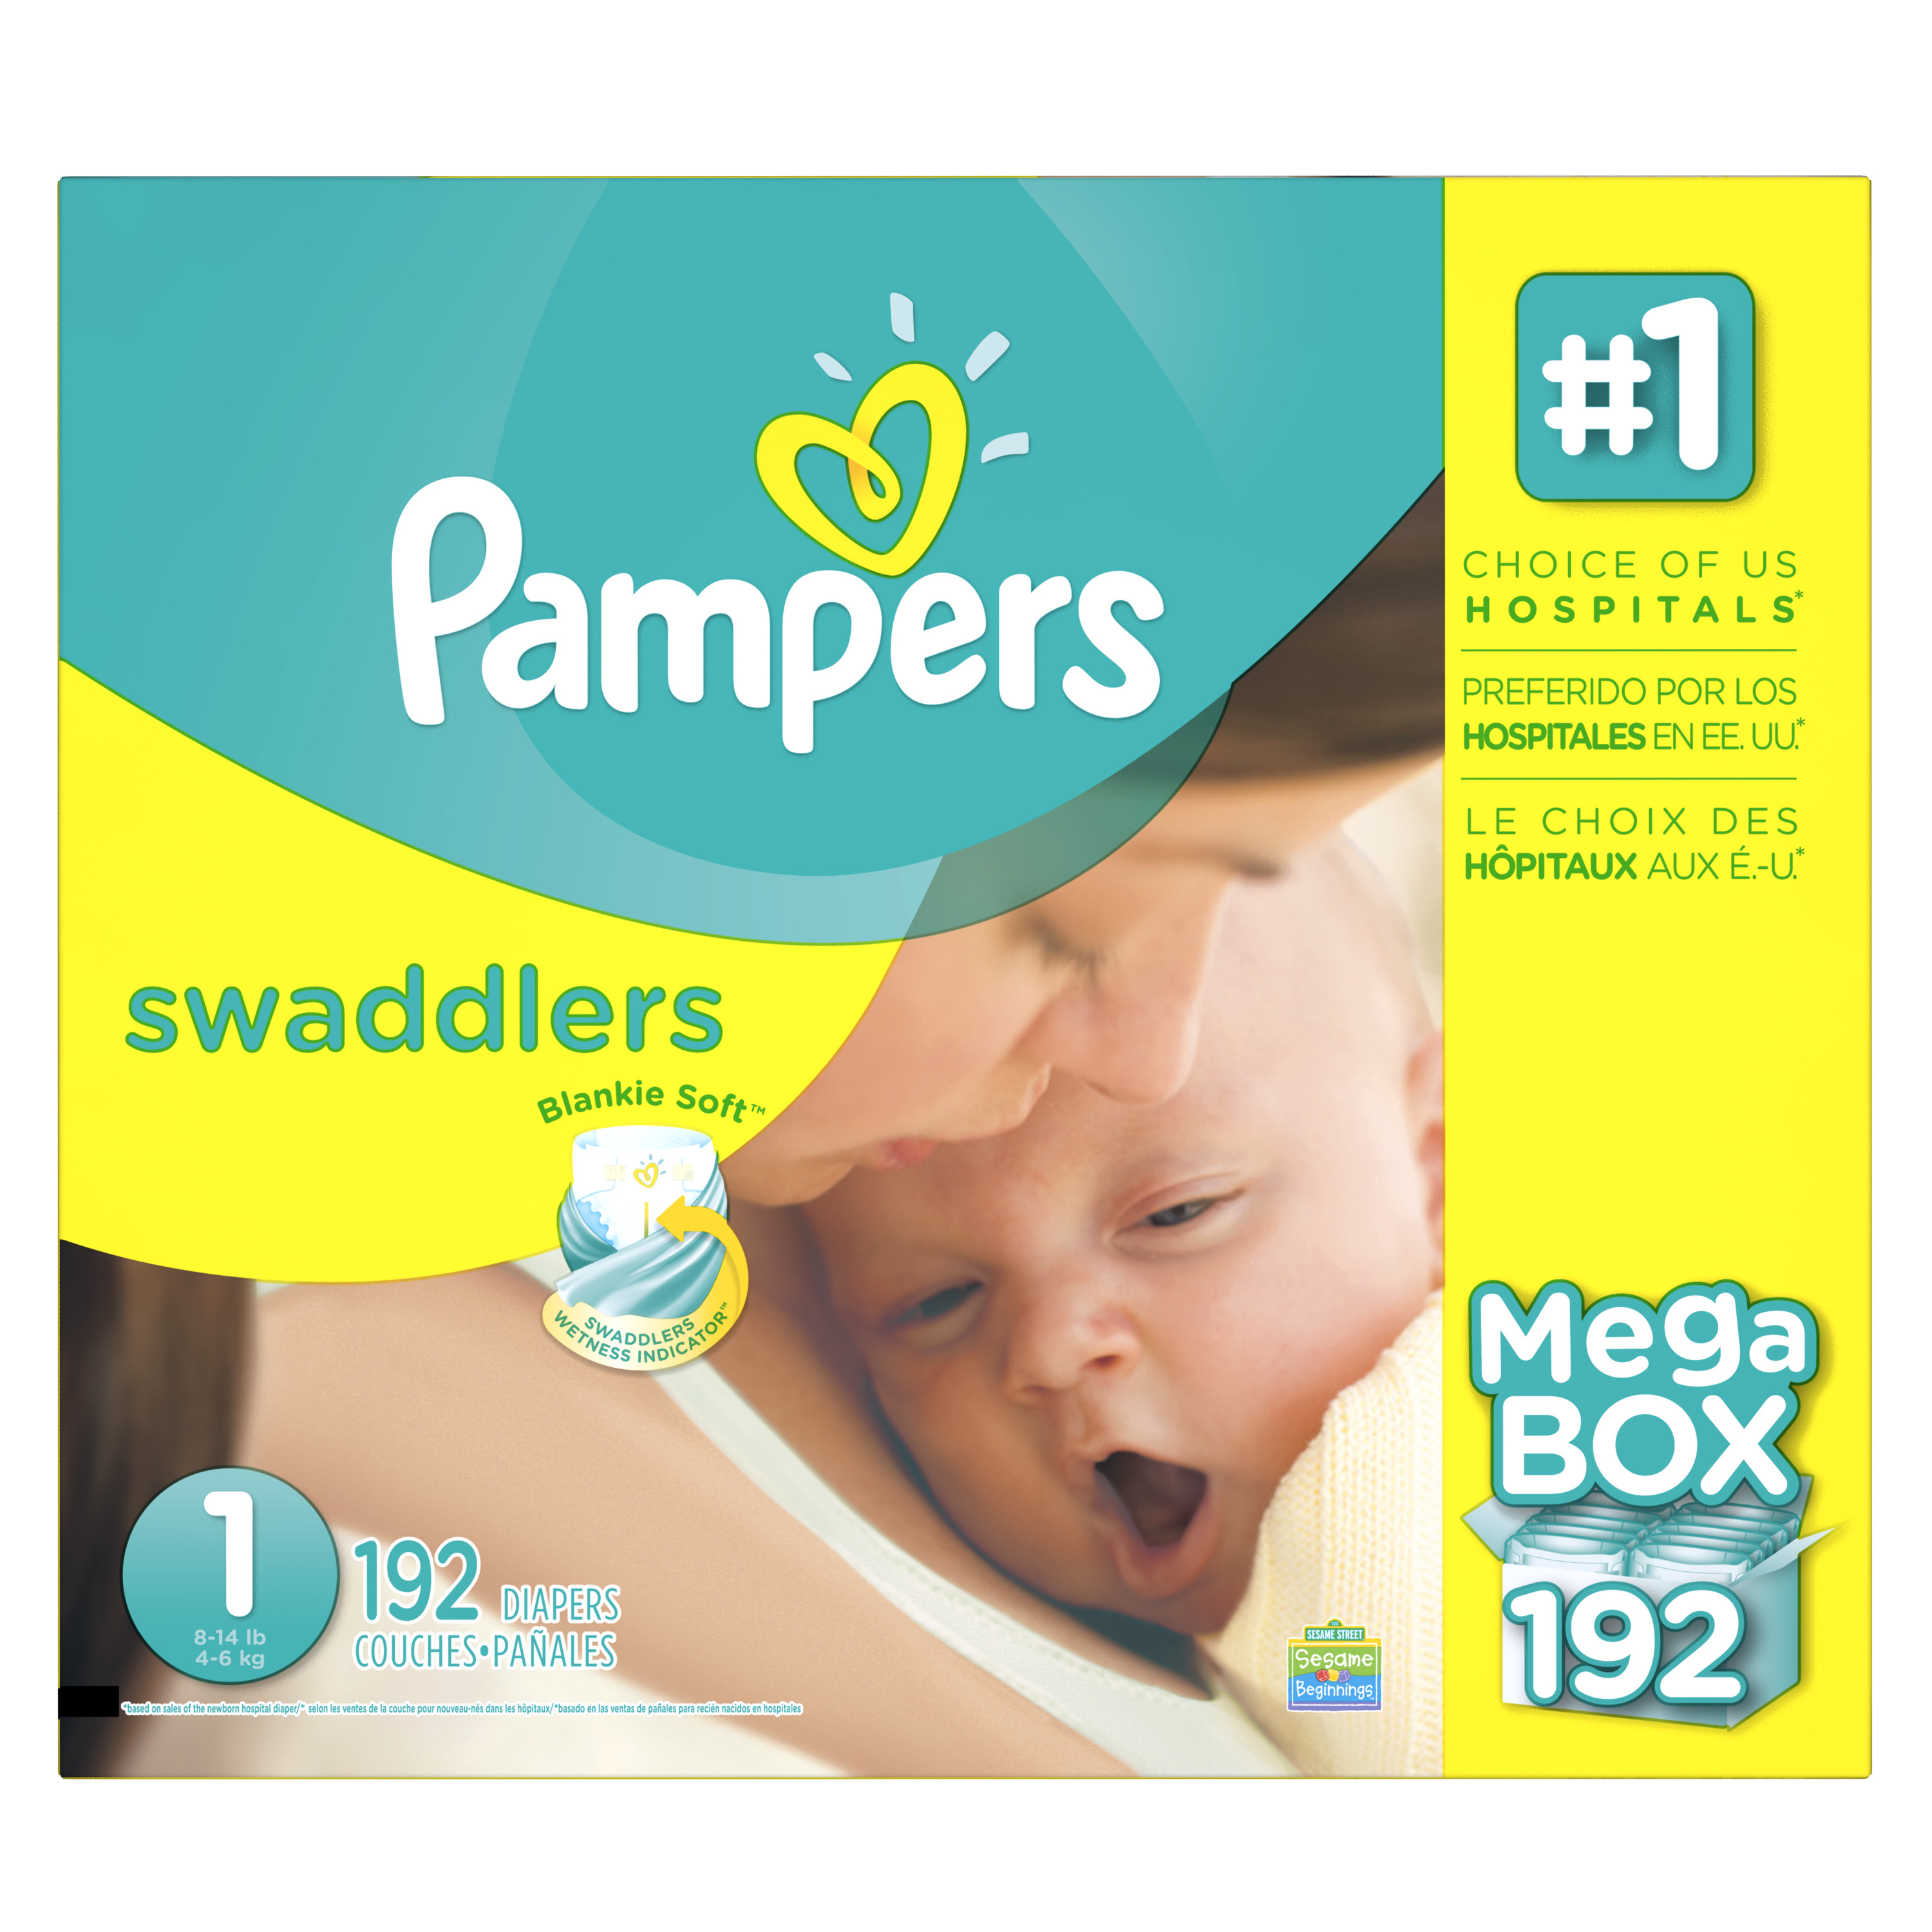 Product of 'Pampers' Swaddlers Size 1 Diapers; 192 ct. - Bulk Qty, Free Shipping - Comfortable, Soft, No Leaking & Good nite Diapers